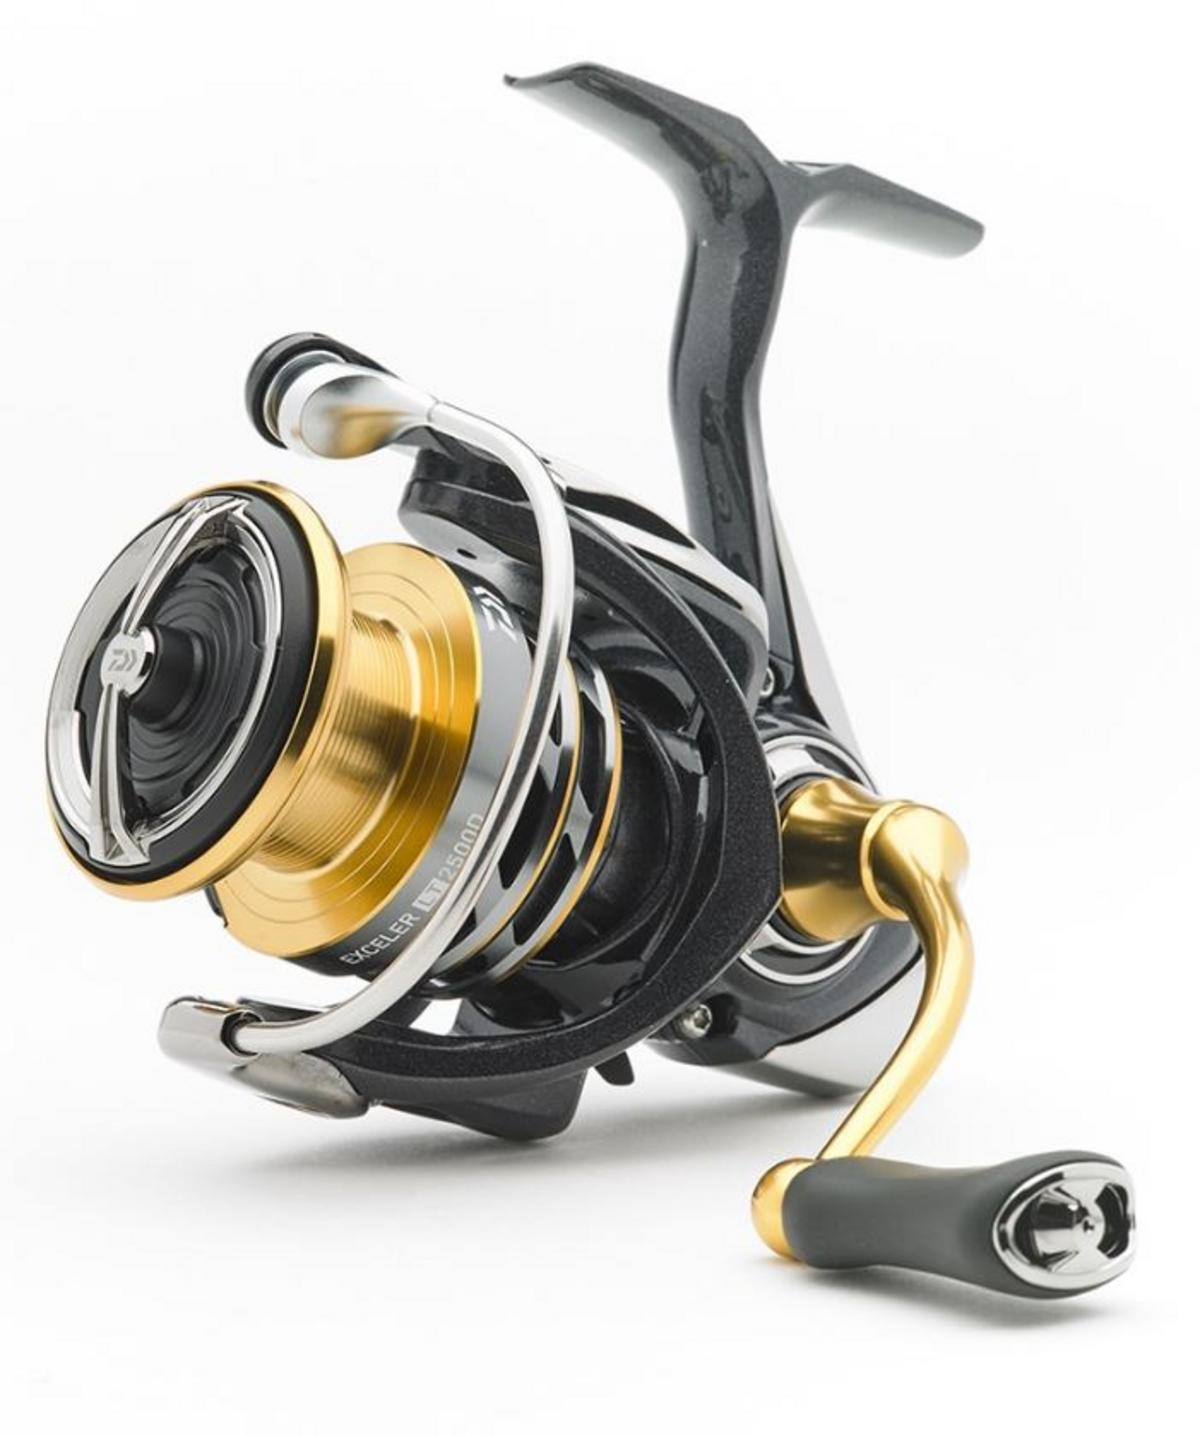 New Daiwa 17 Exceler LT Fishing Spinning Reels - All Sizes / Models